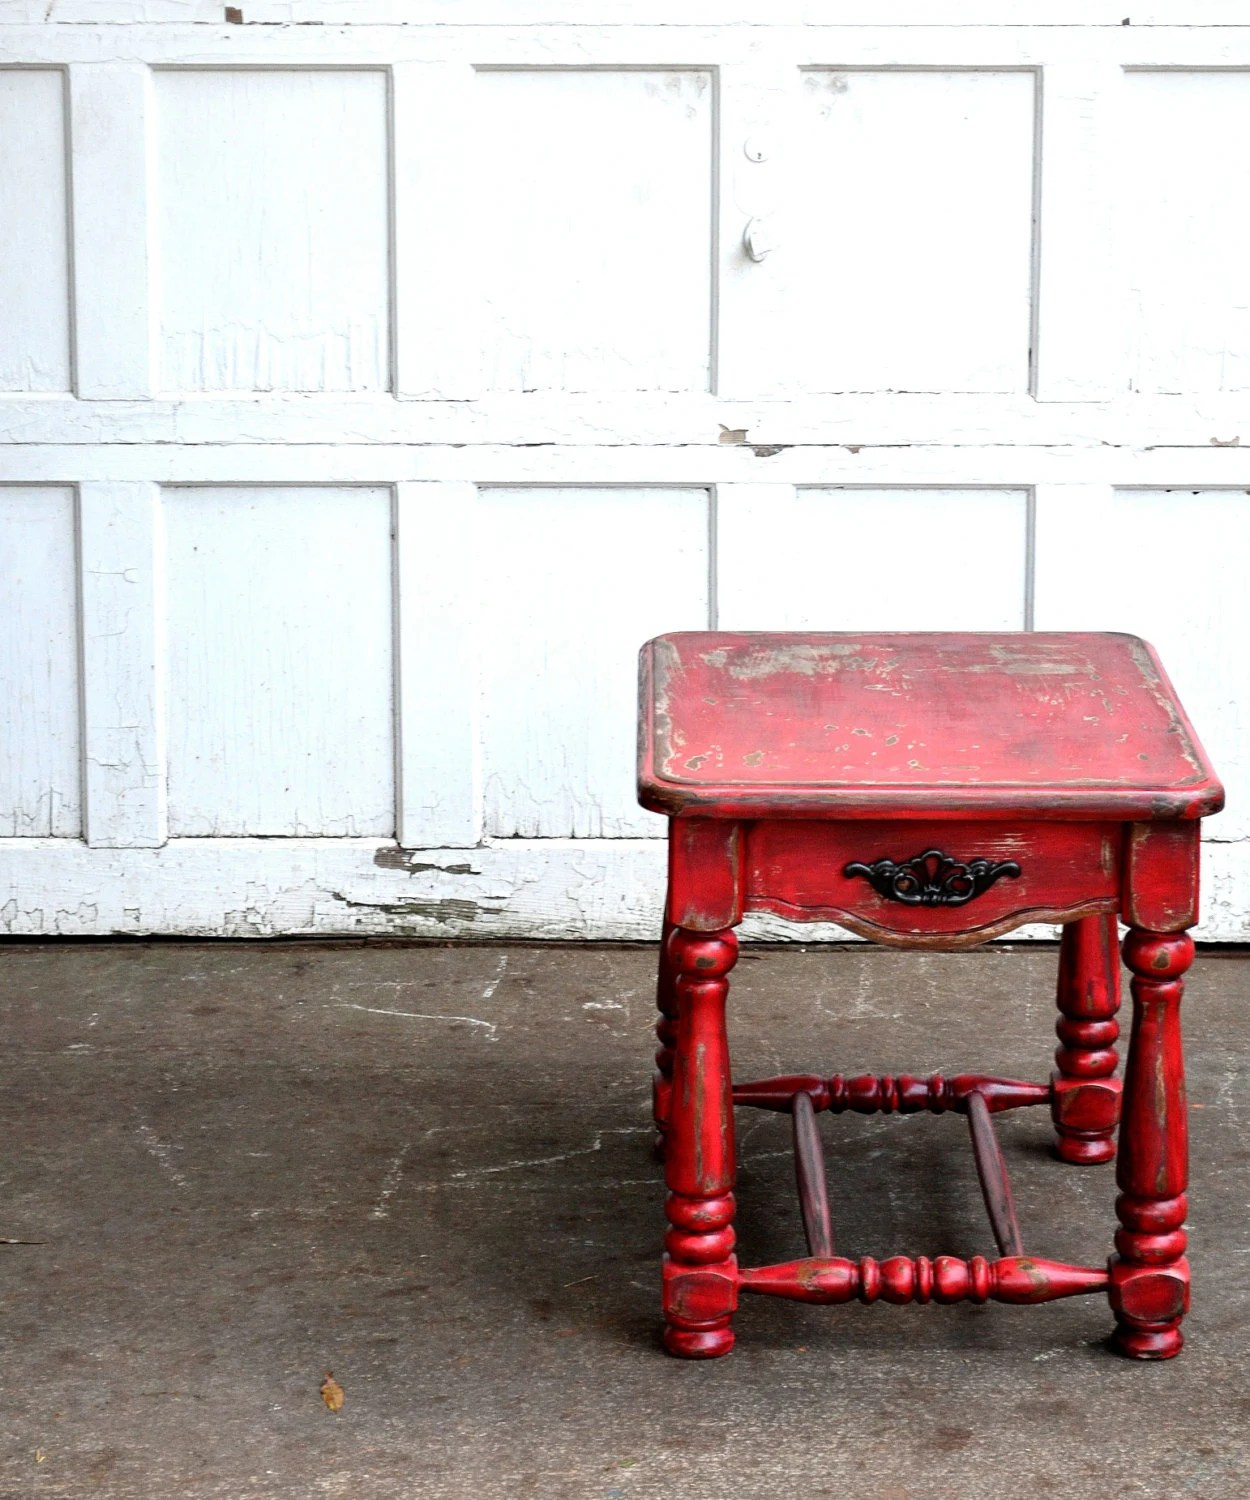 Chalk painted distressed furniture barn red rustic fall sidetable hand painted using homemade chalk paint autumn decor shabby chic boho - BlackSheepMill